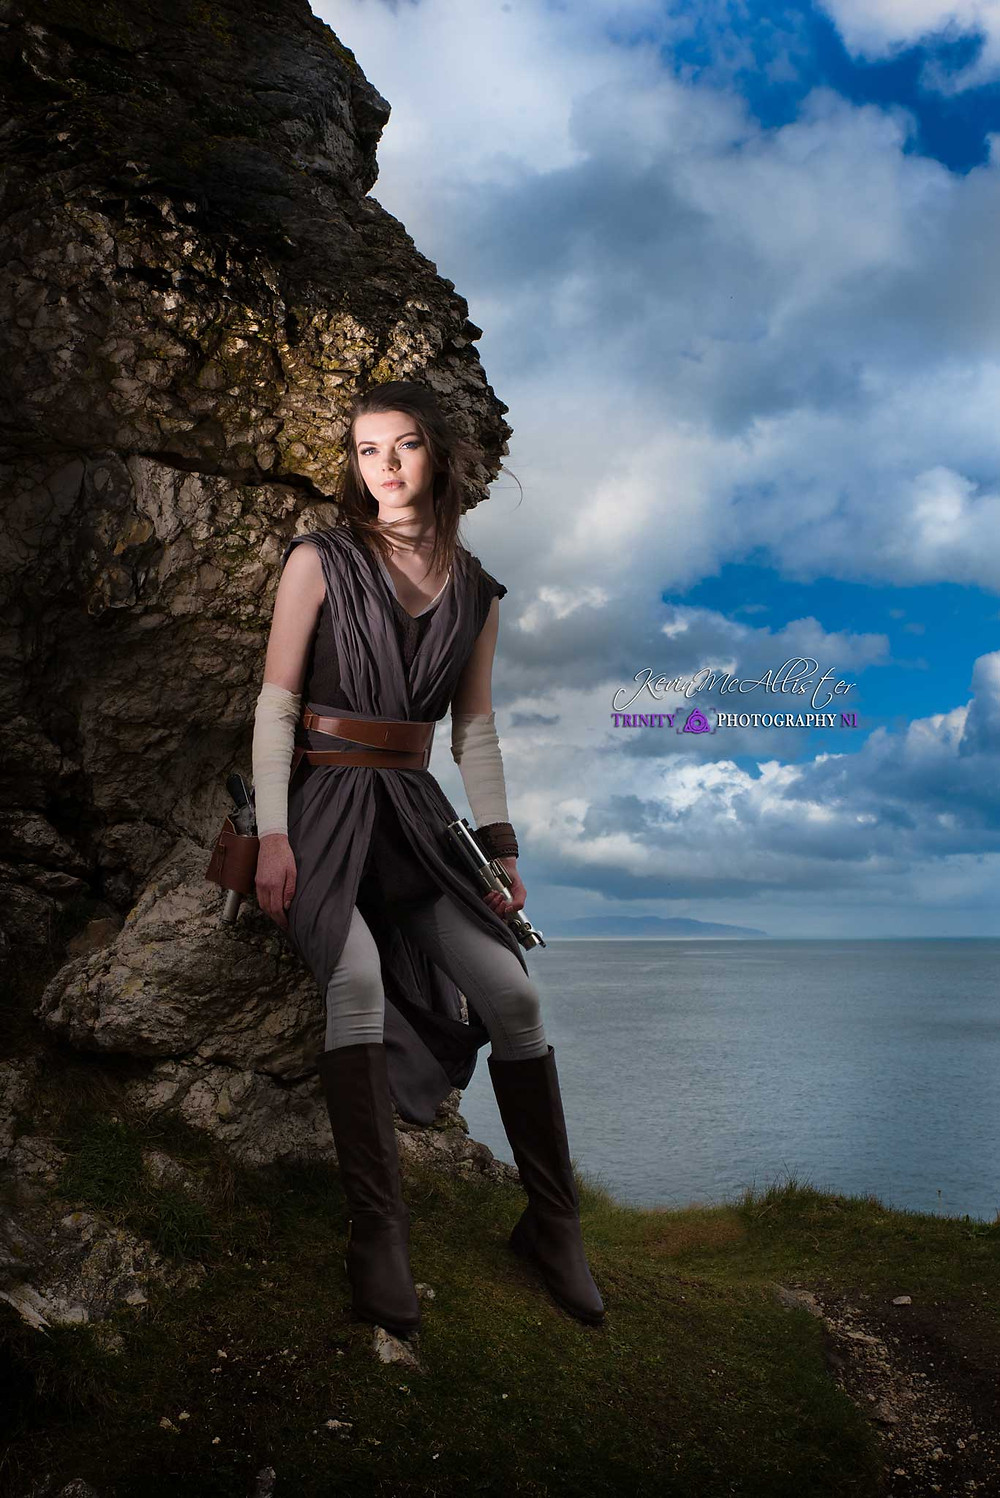 rey cosplayer north coast of ireland, lit by strobe lighting